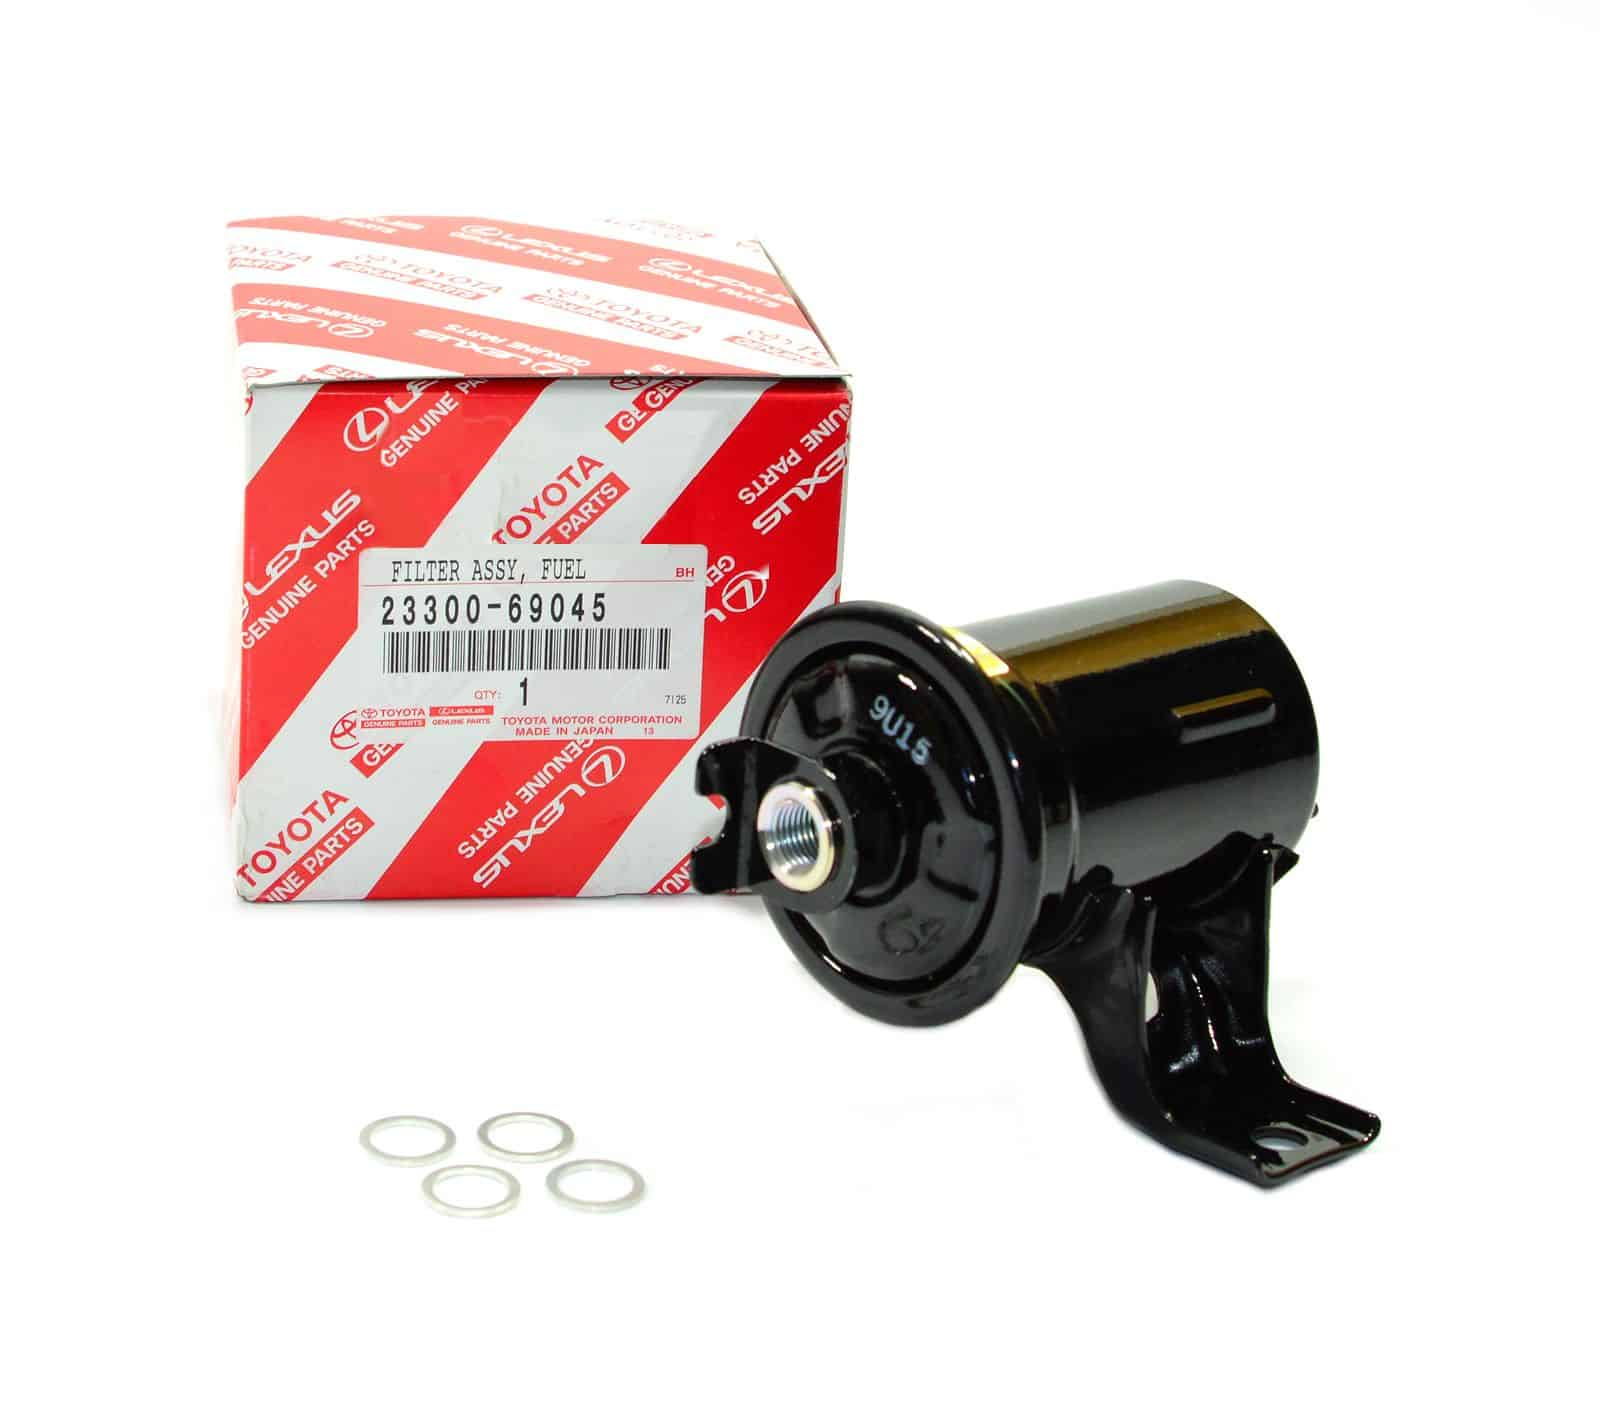 Genuine Toyota Fuel Filter